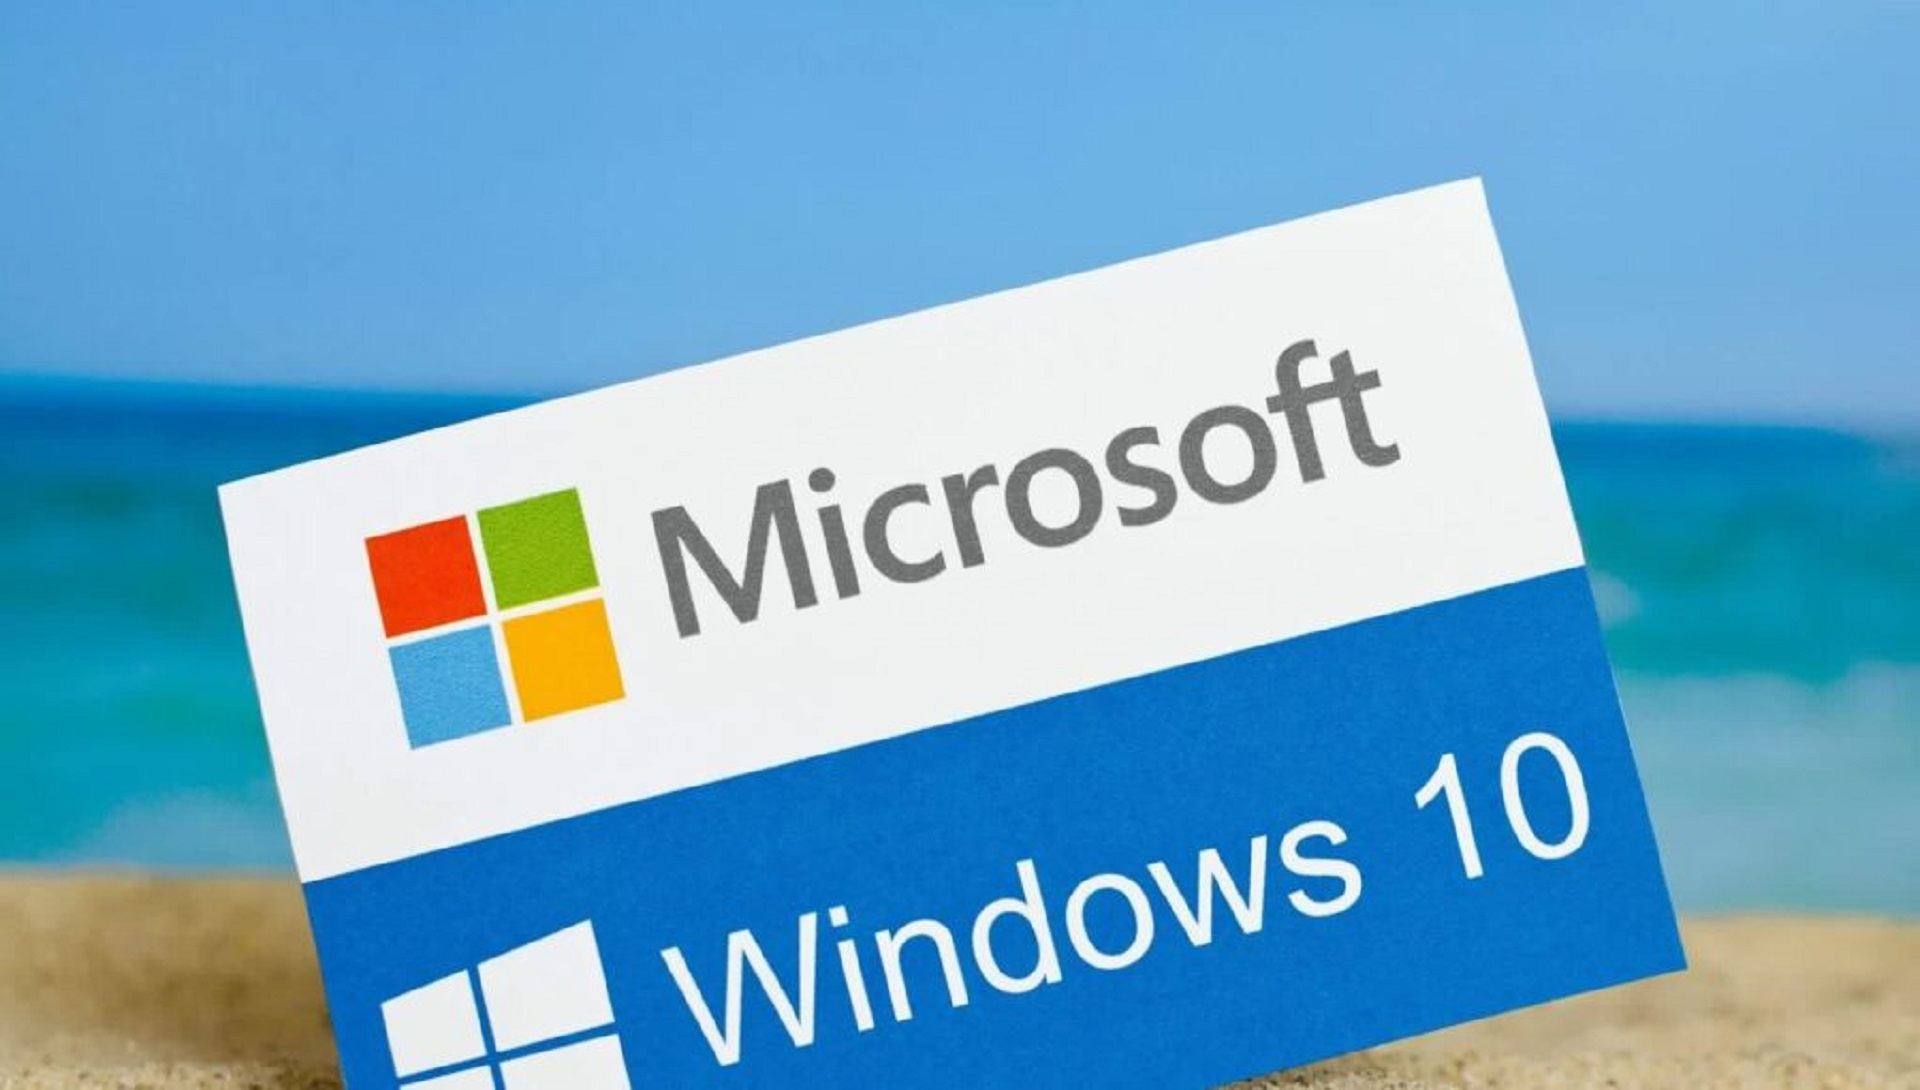 22727-current-windows-10-security-upgrade-borks-video-gaming-with-unsteady-frame-rates-boot-lo-jpg.13521